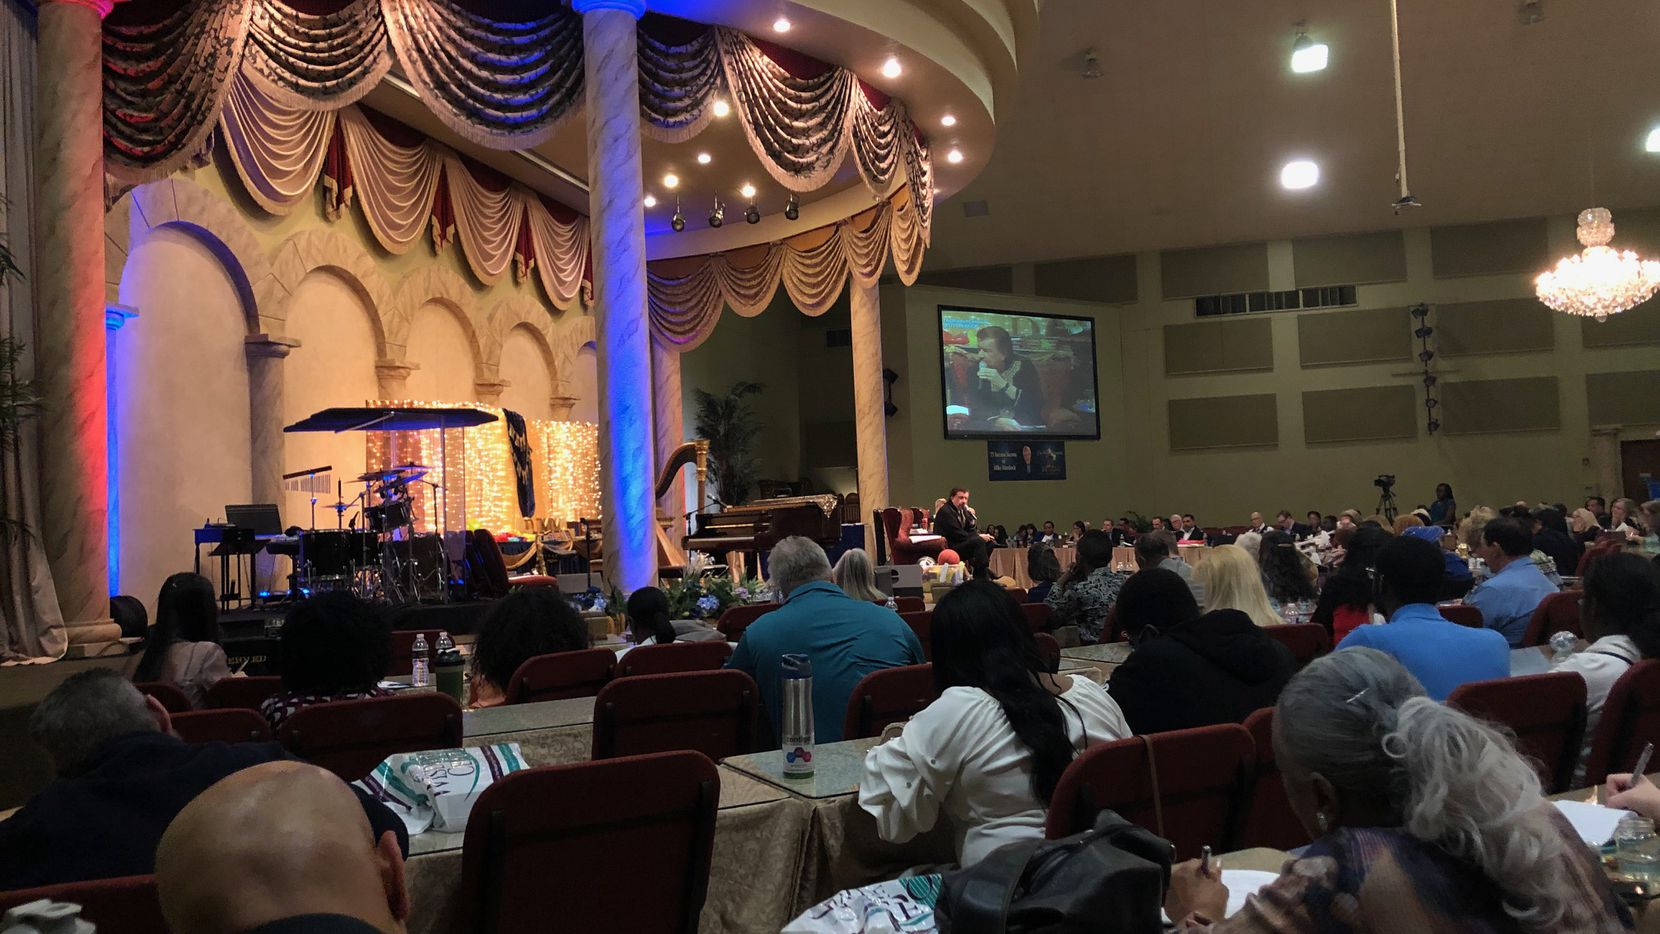 TV evangelist Mike Murdock hosted a four-day birthday celebration at his Haltom City church.